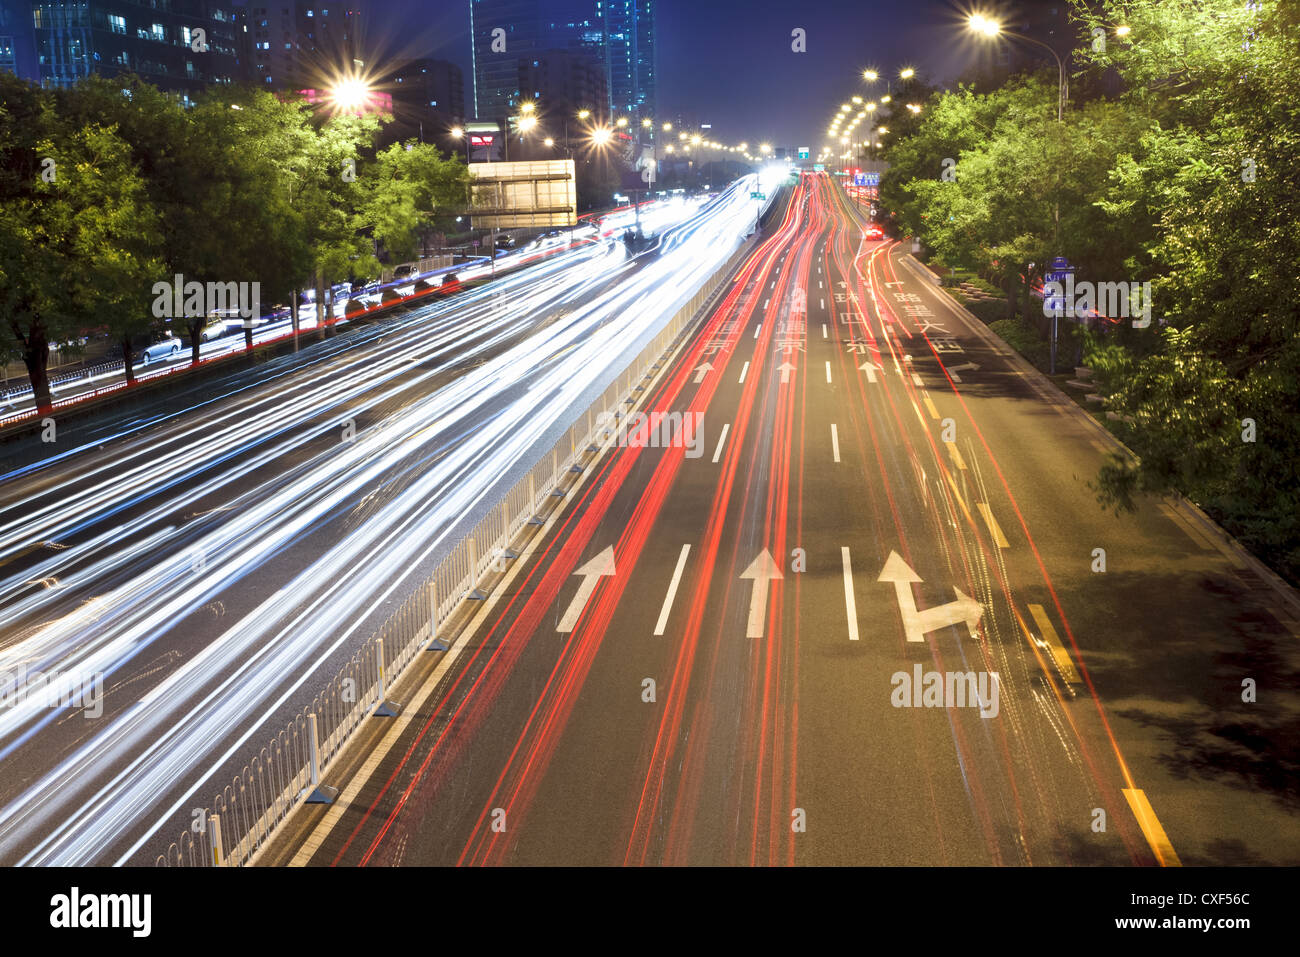 beijing night scene in rush hour traffic - Stock Image